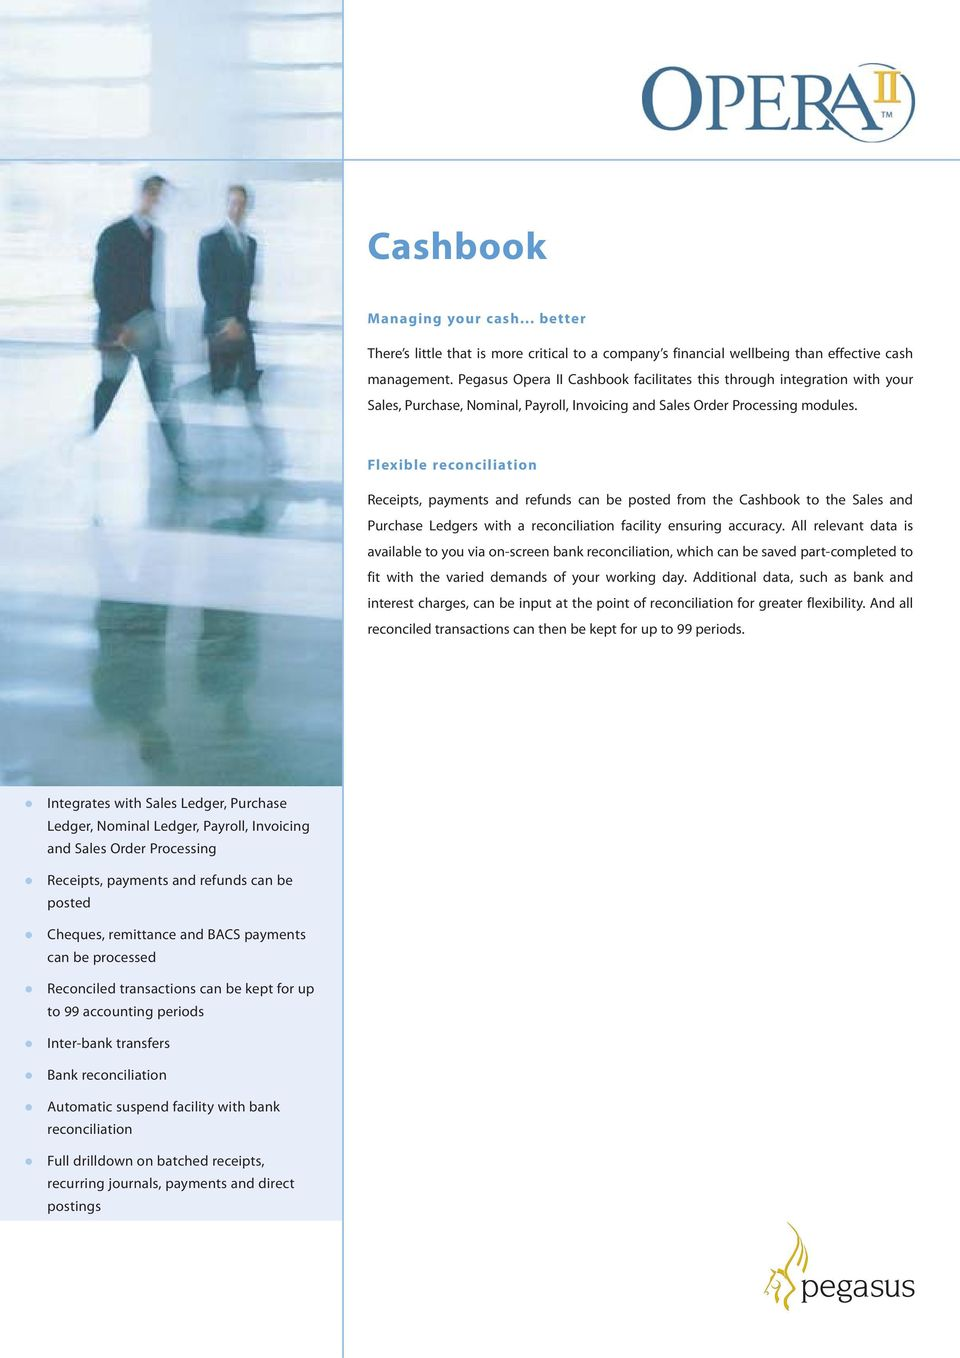 Flexible reconciliation Receipts, payments and refunds can be posted from the Cashbook to the Sales and Purchase Ledgers with a reconciliation facility ensuring accuracy.